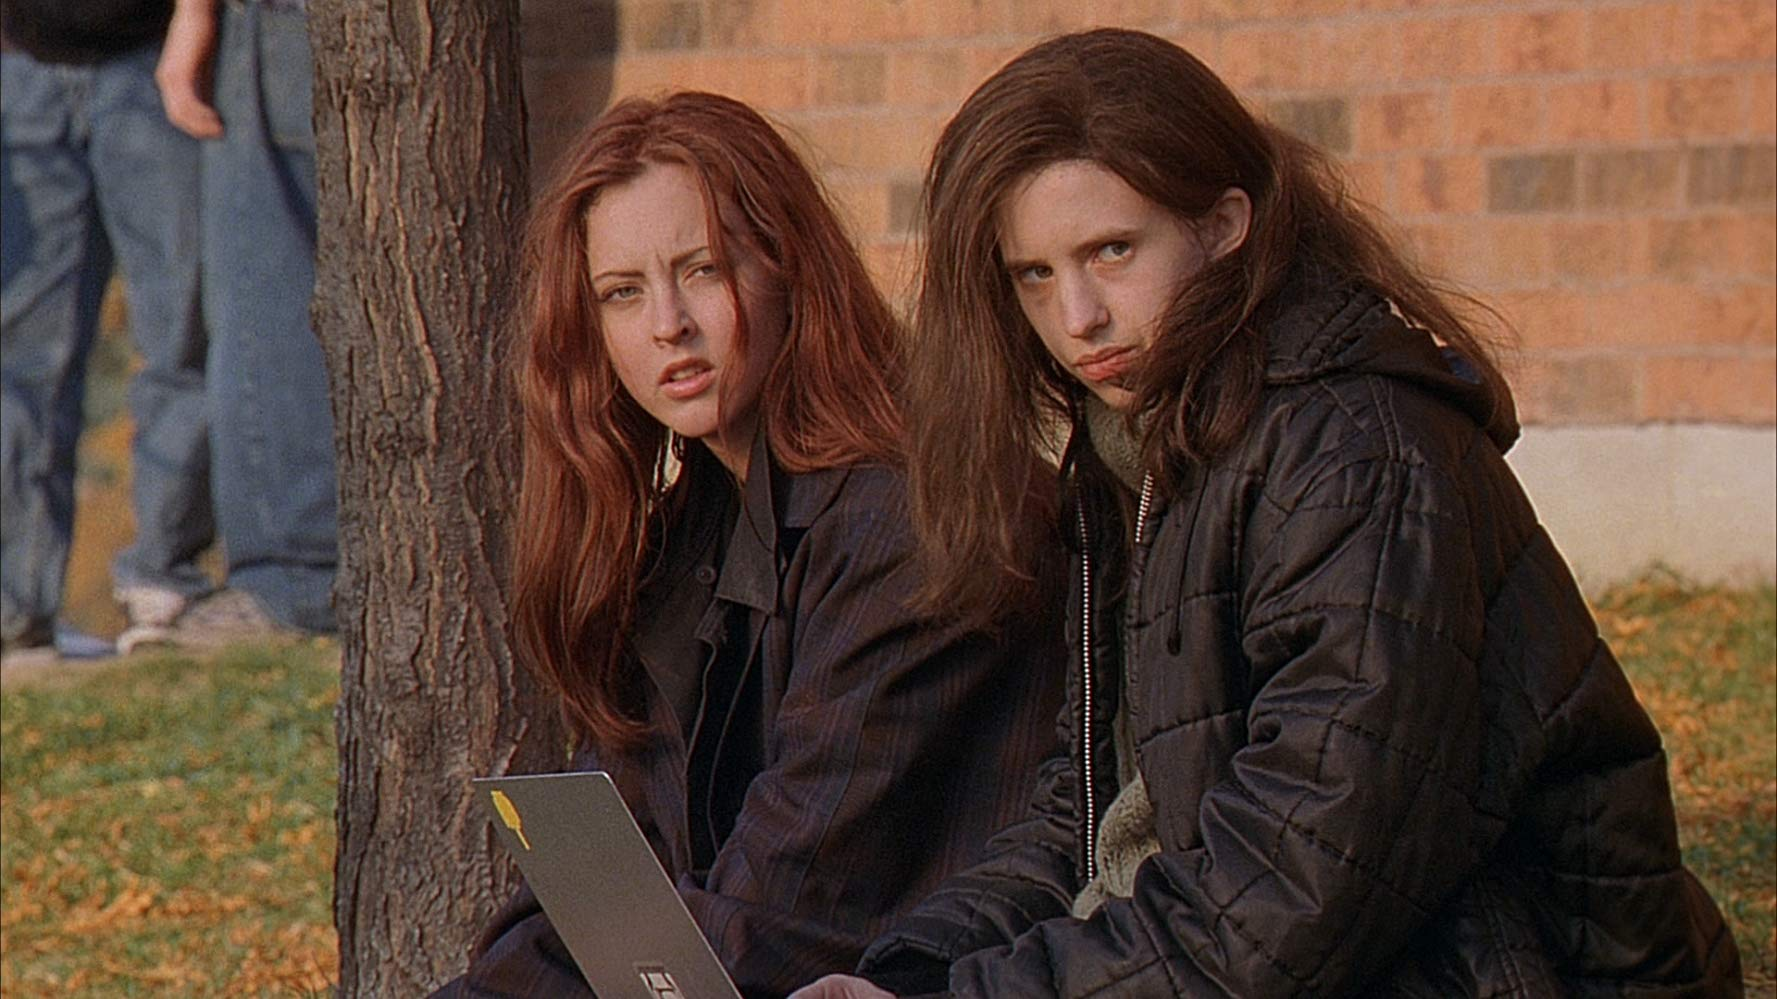 The Fitzgerald sisters - Ginger (Katharine Isabelle) and Bea (Emily Perkins) in Ginger Snaps (2000)